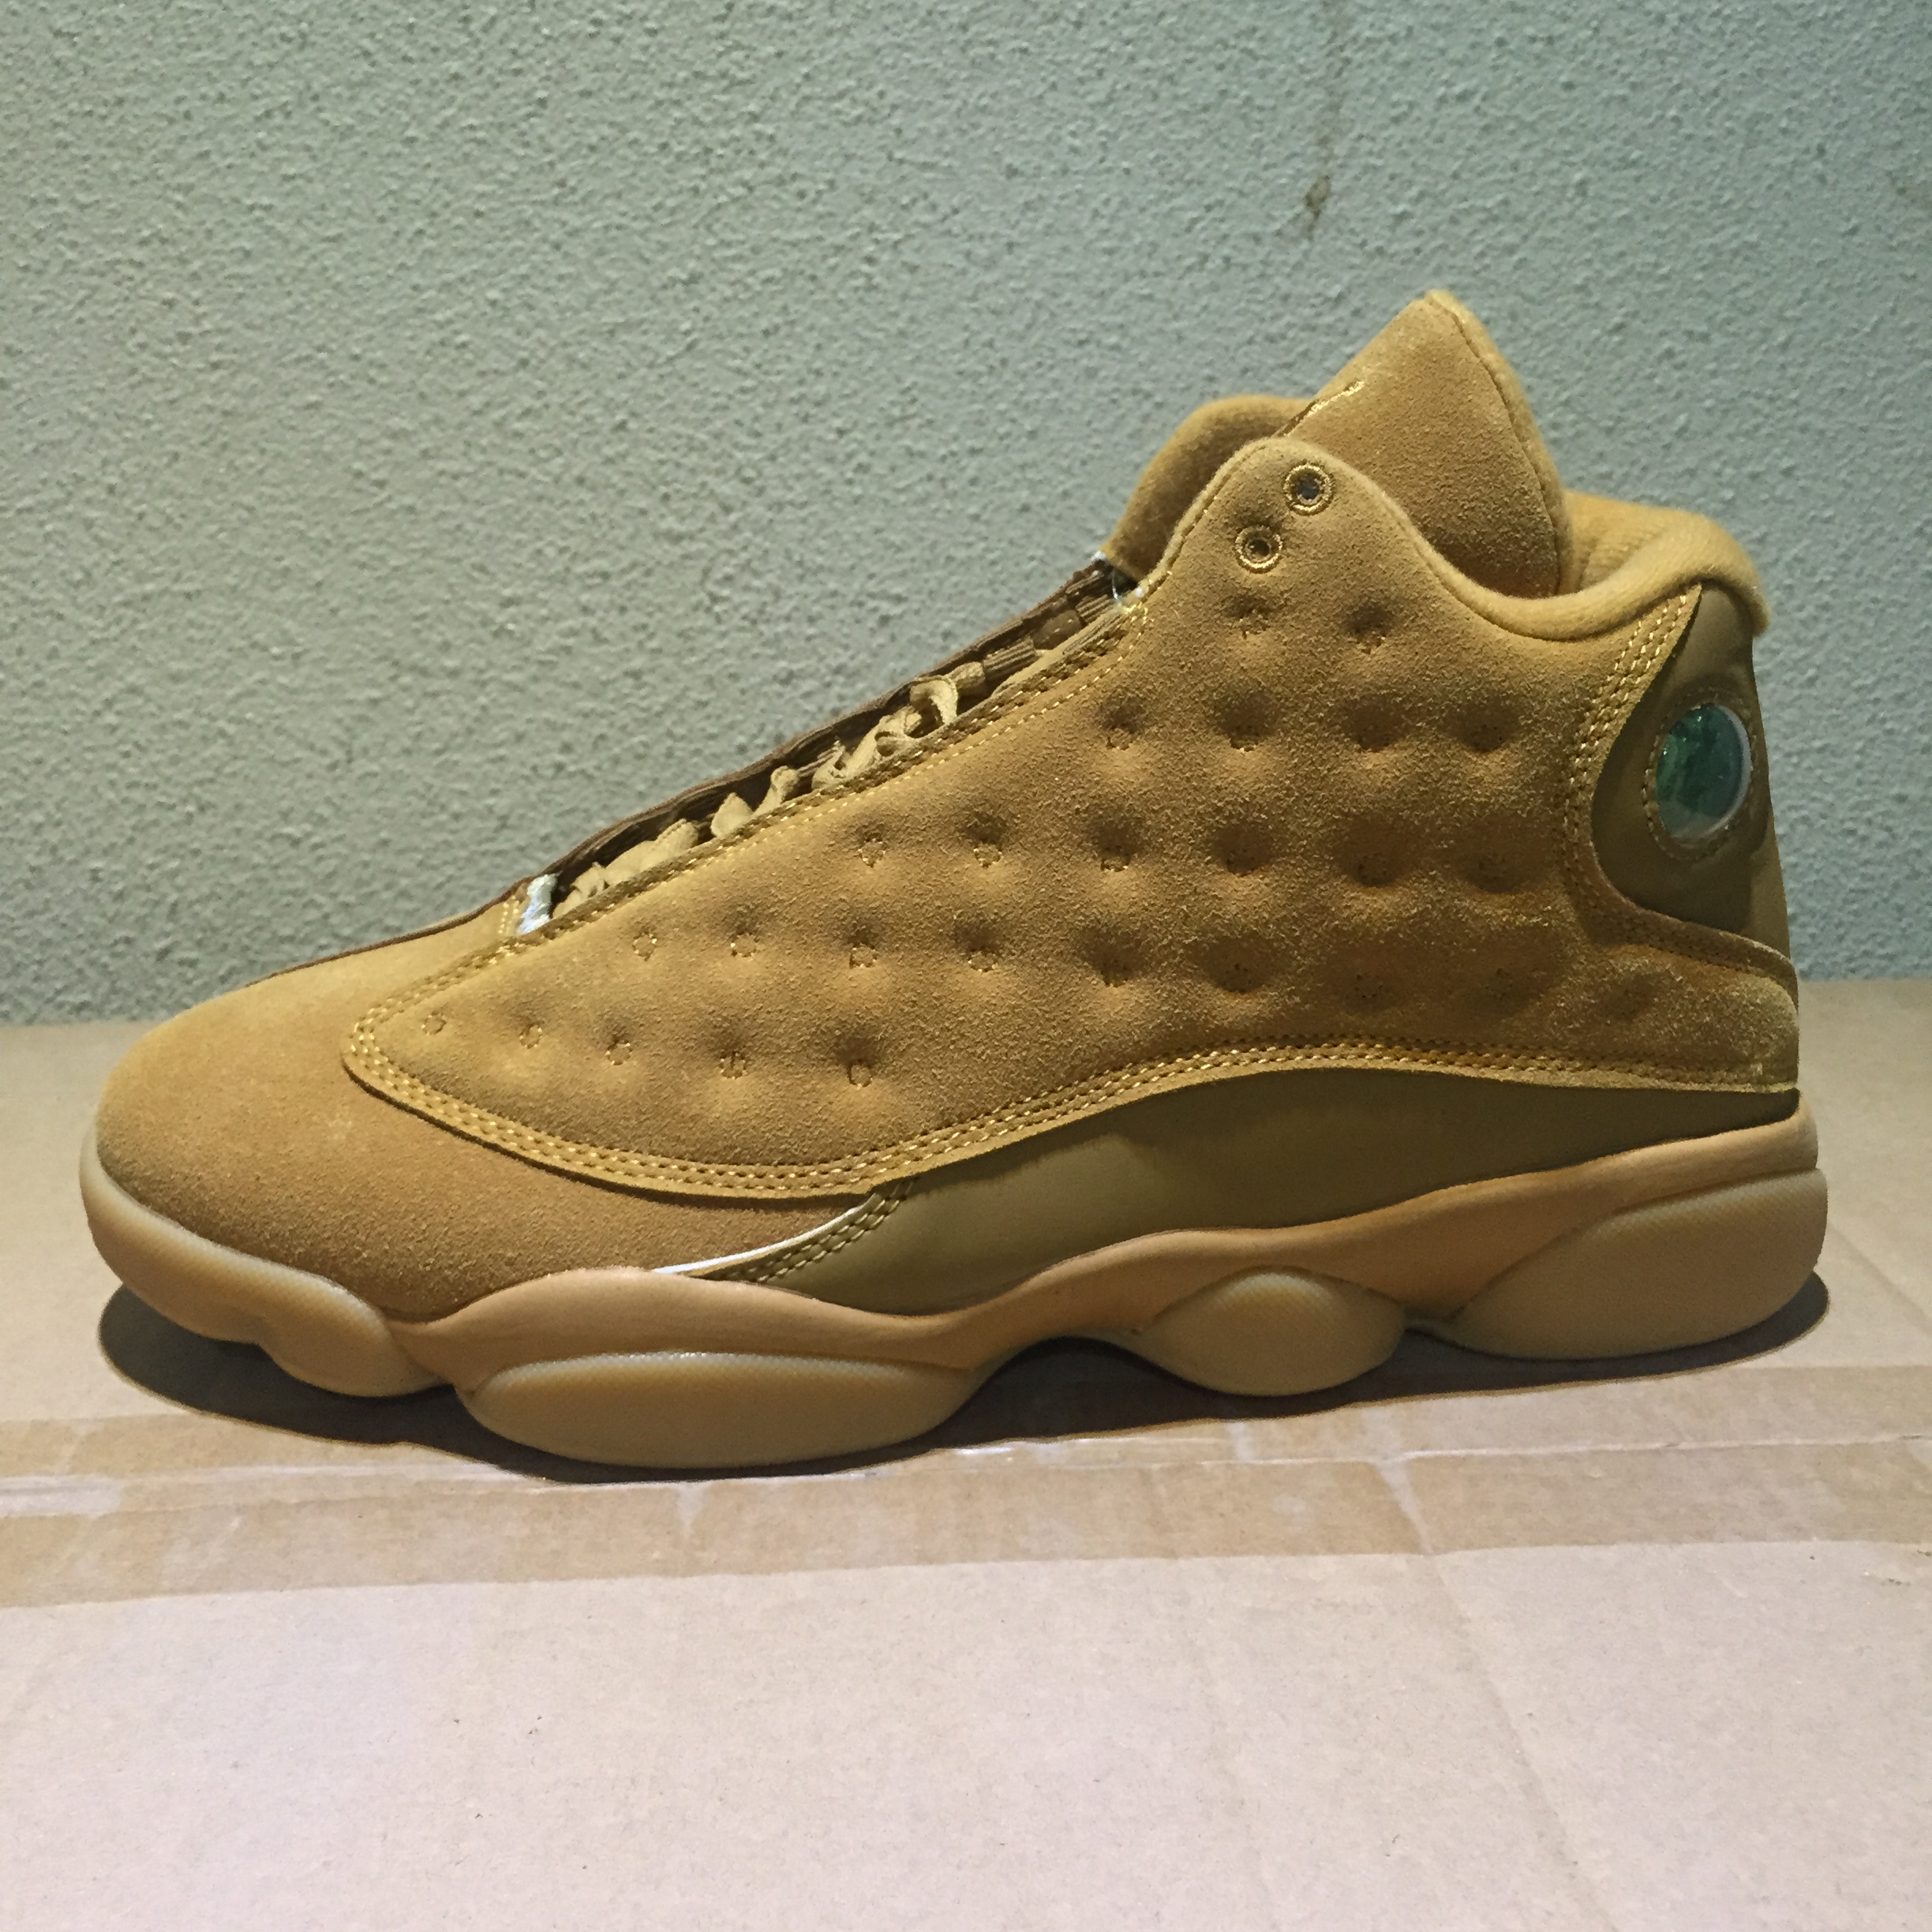 2017 Jordan 13 Retro Wheat Yellow